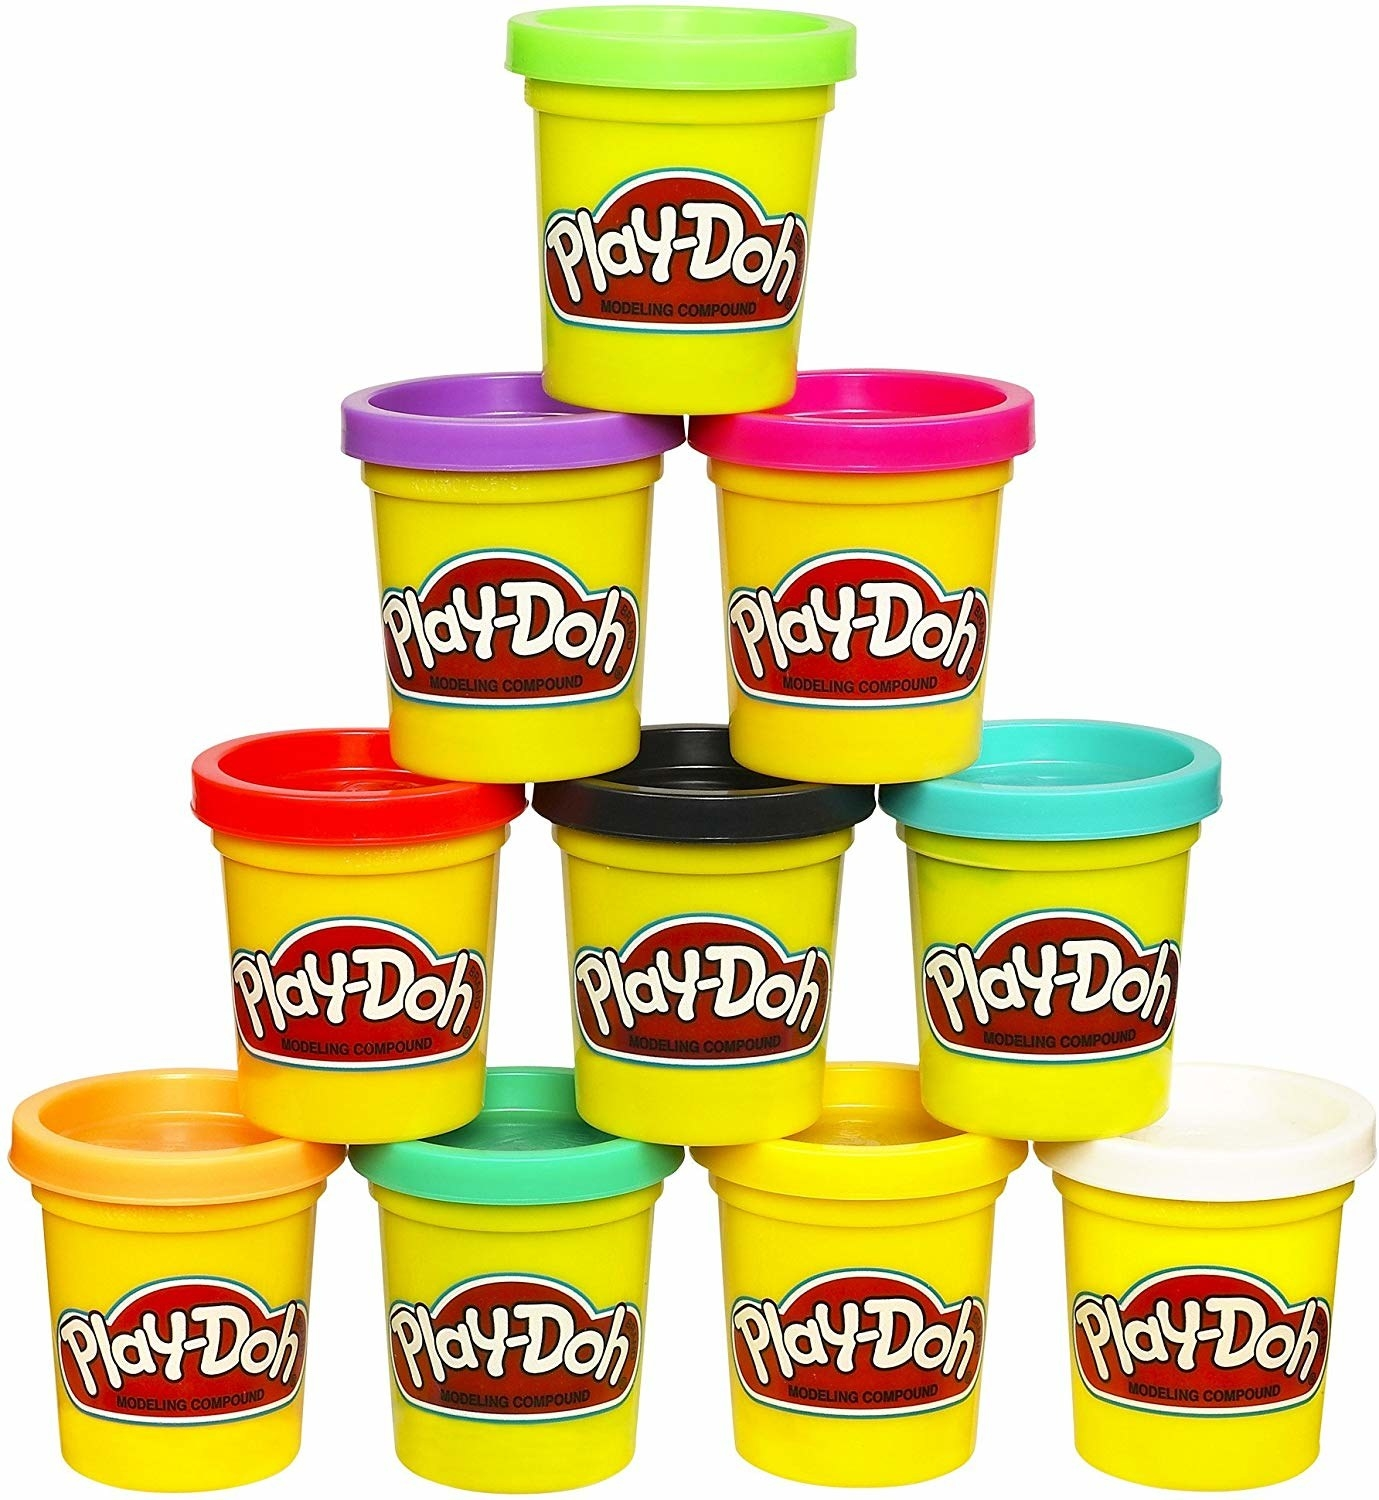 Ten different color containers of Play-Doh stacked in a pyramid